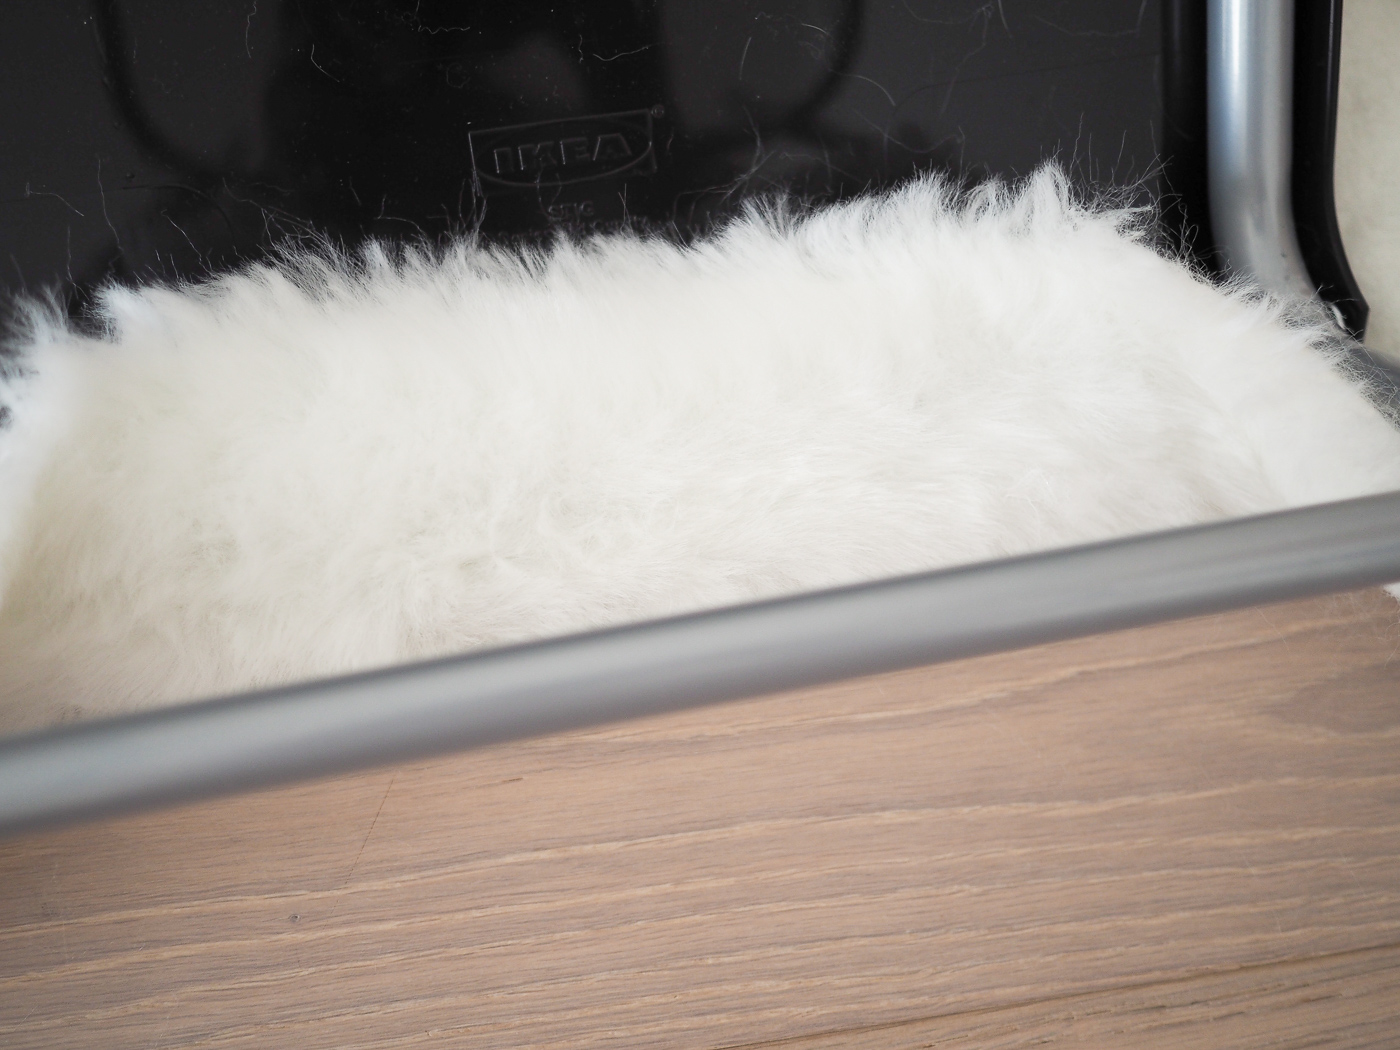 Diy Faux Fur Bar Stool Tutorial Ikea Hack Bang On Style